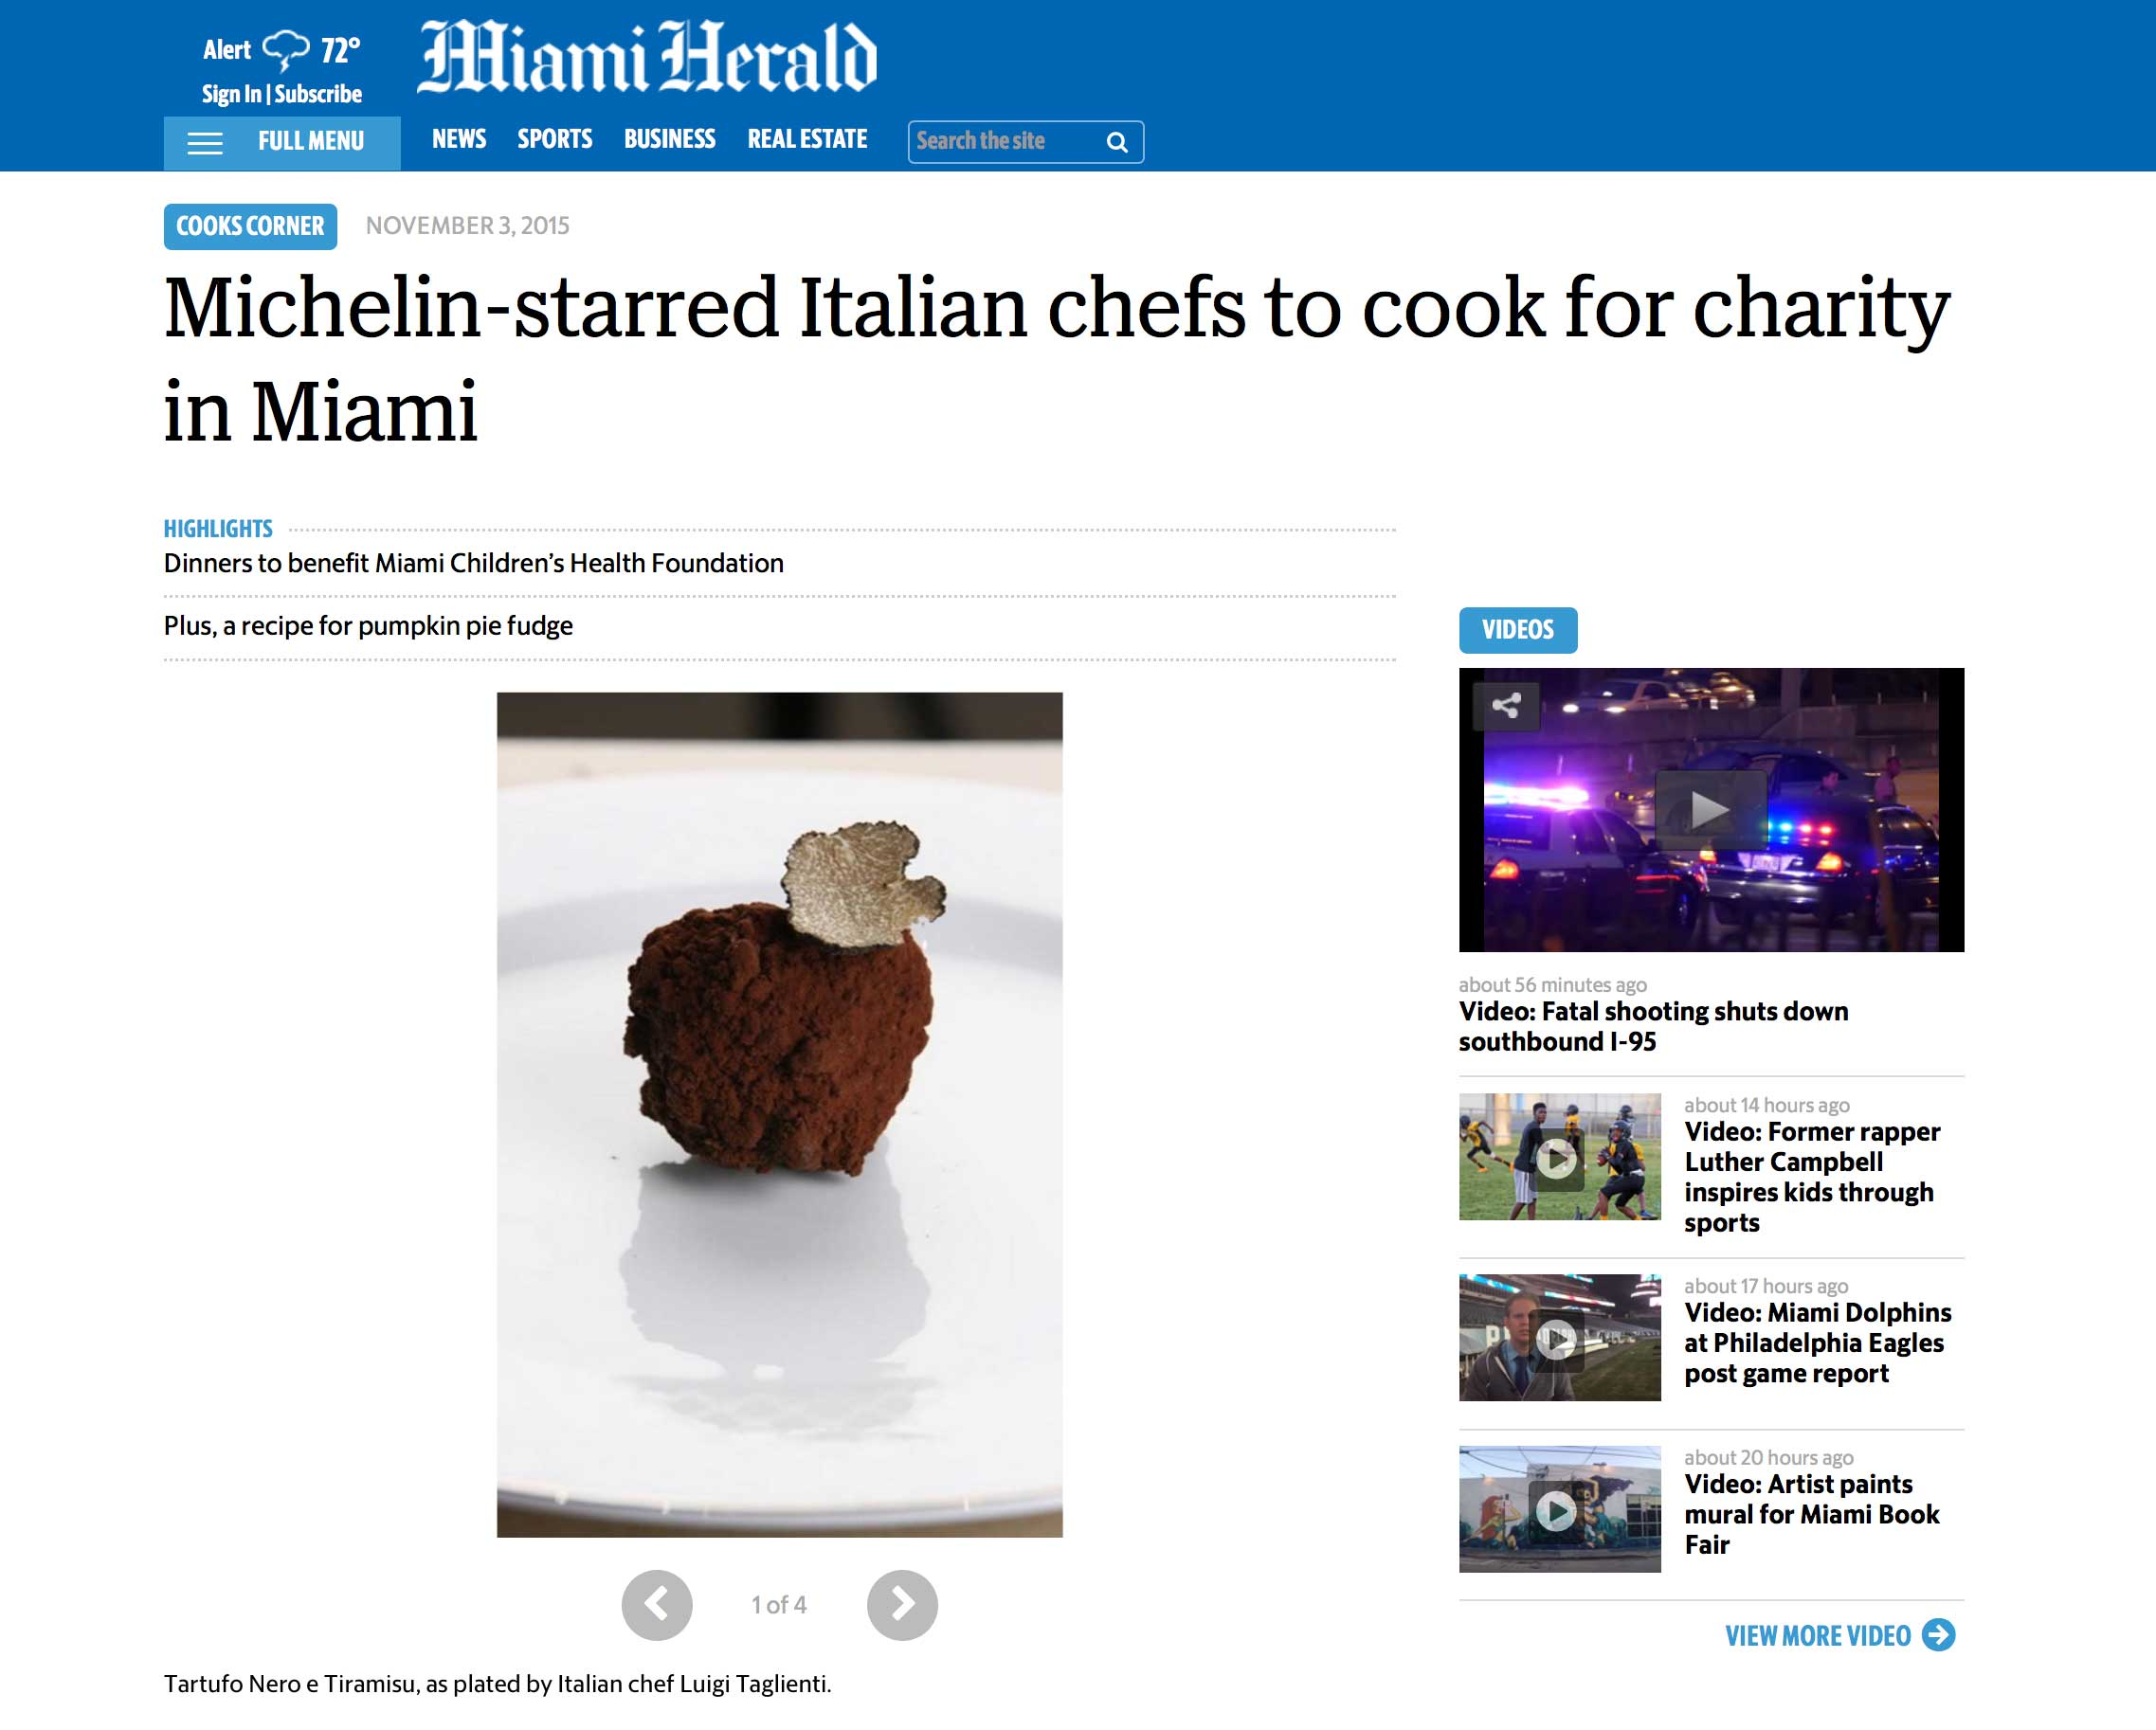 """<p><strong>Miami Herald</strong><a href=""""http://www.miamiherald.com/living/food-drink/cooks-corner/article42583329.html"""" target=""""_blank"""">Read Article→</a></p>"""